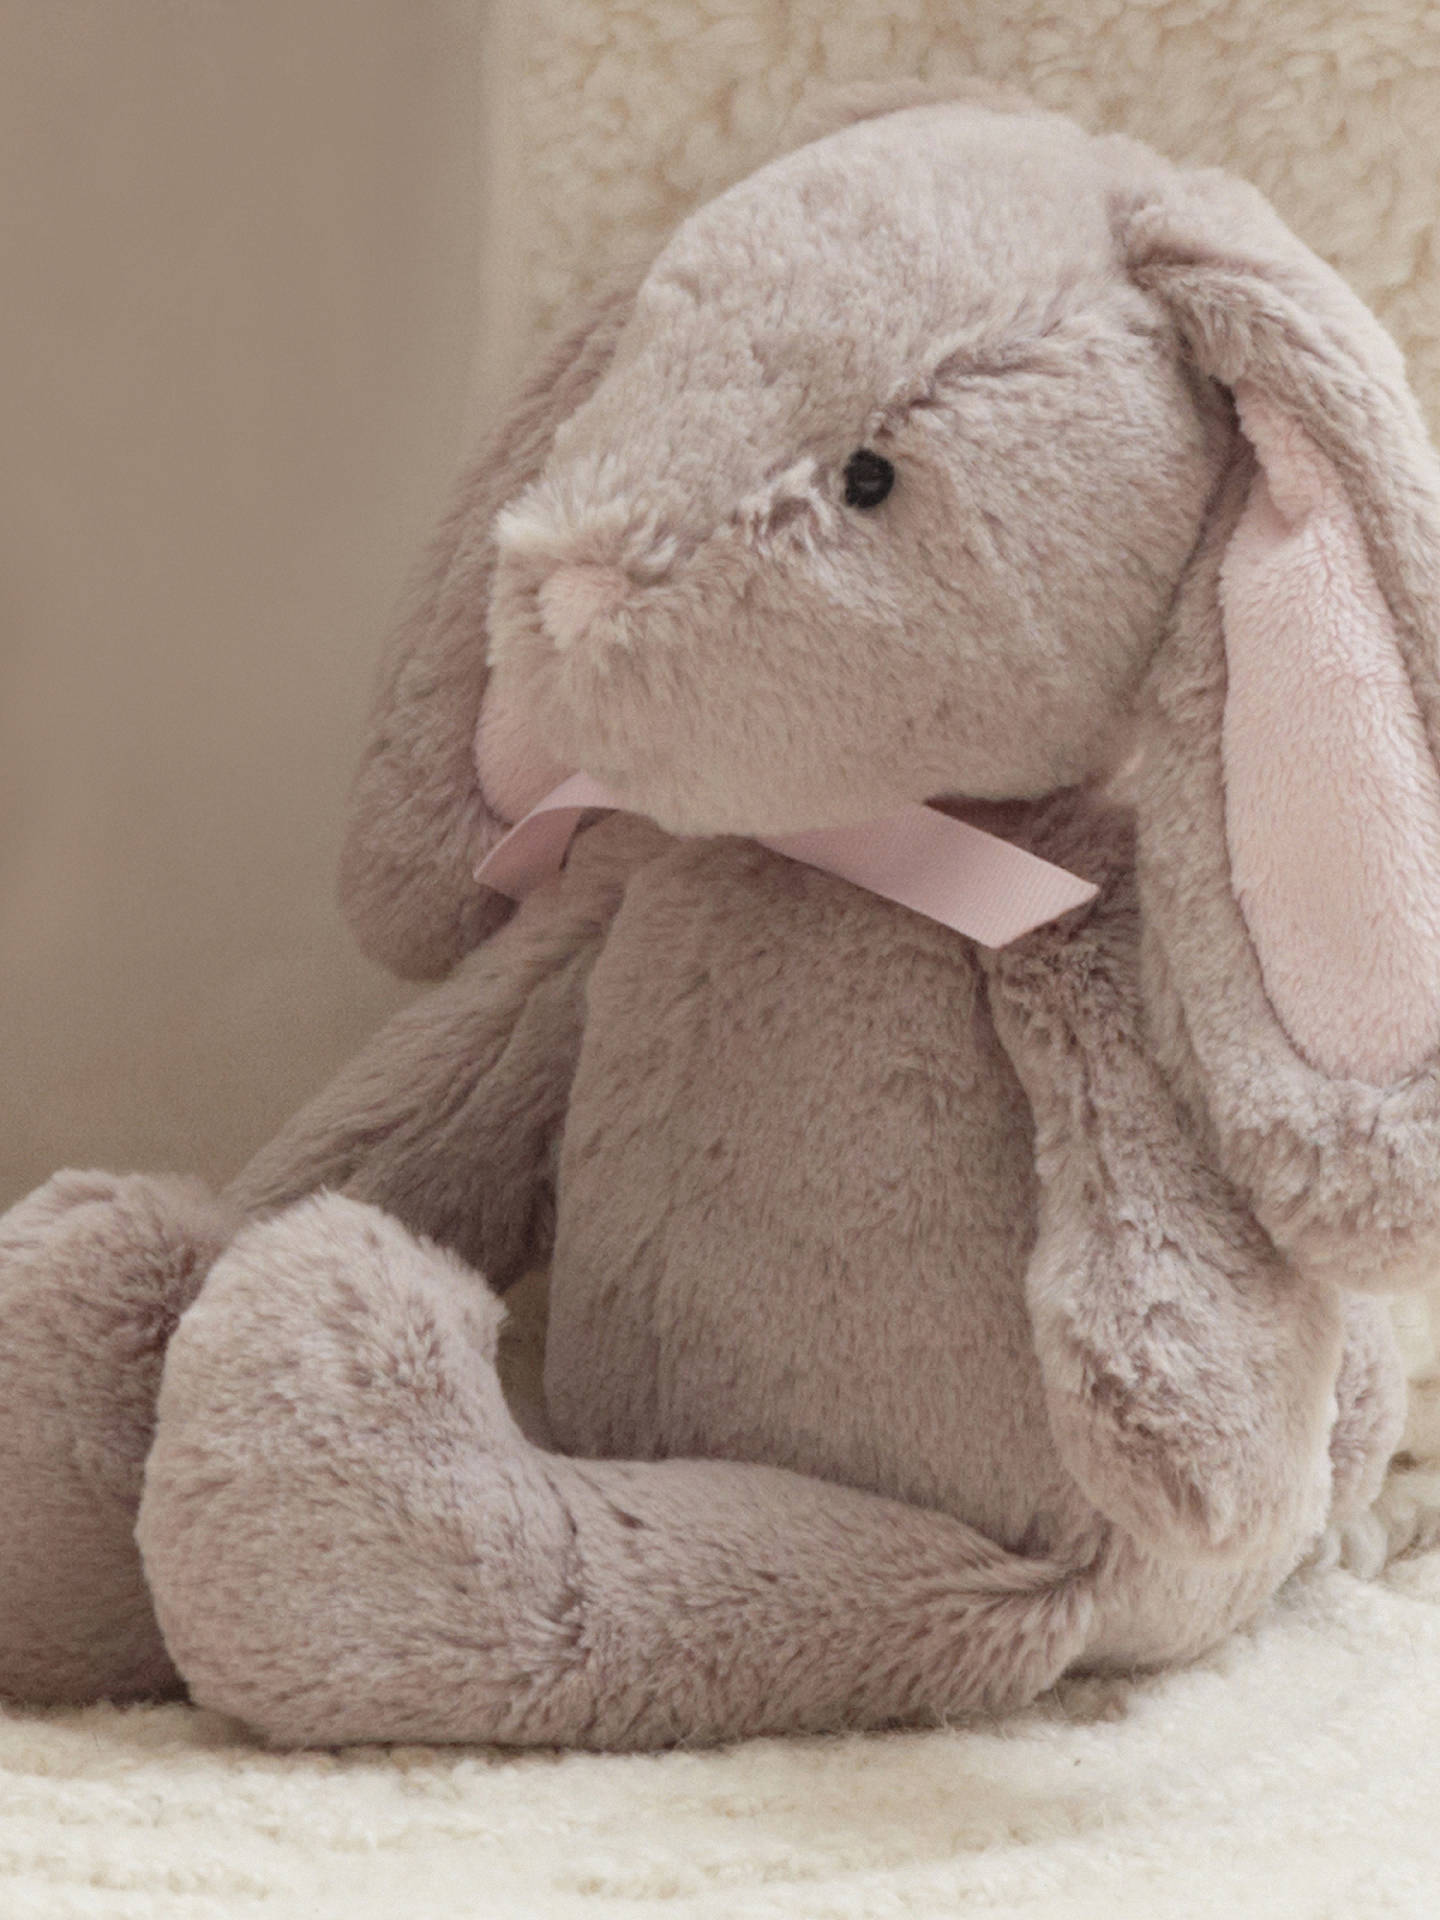 Buy Pottery Barn Kids Plush Bunny Soft Toy, Small Online at johnlewis.com